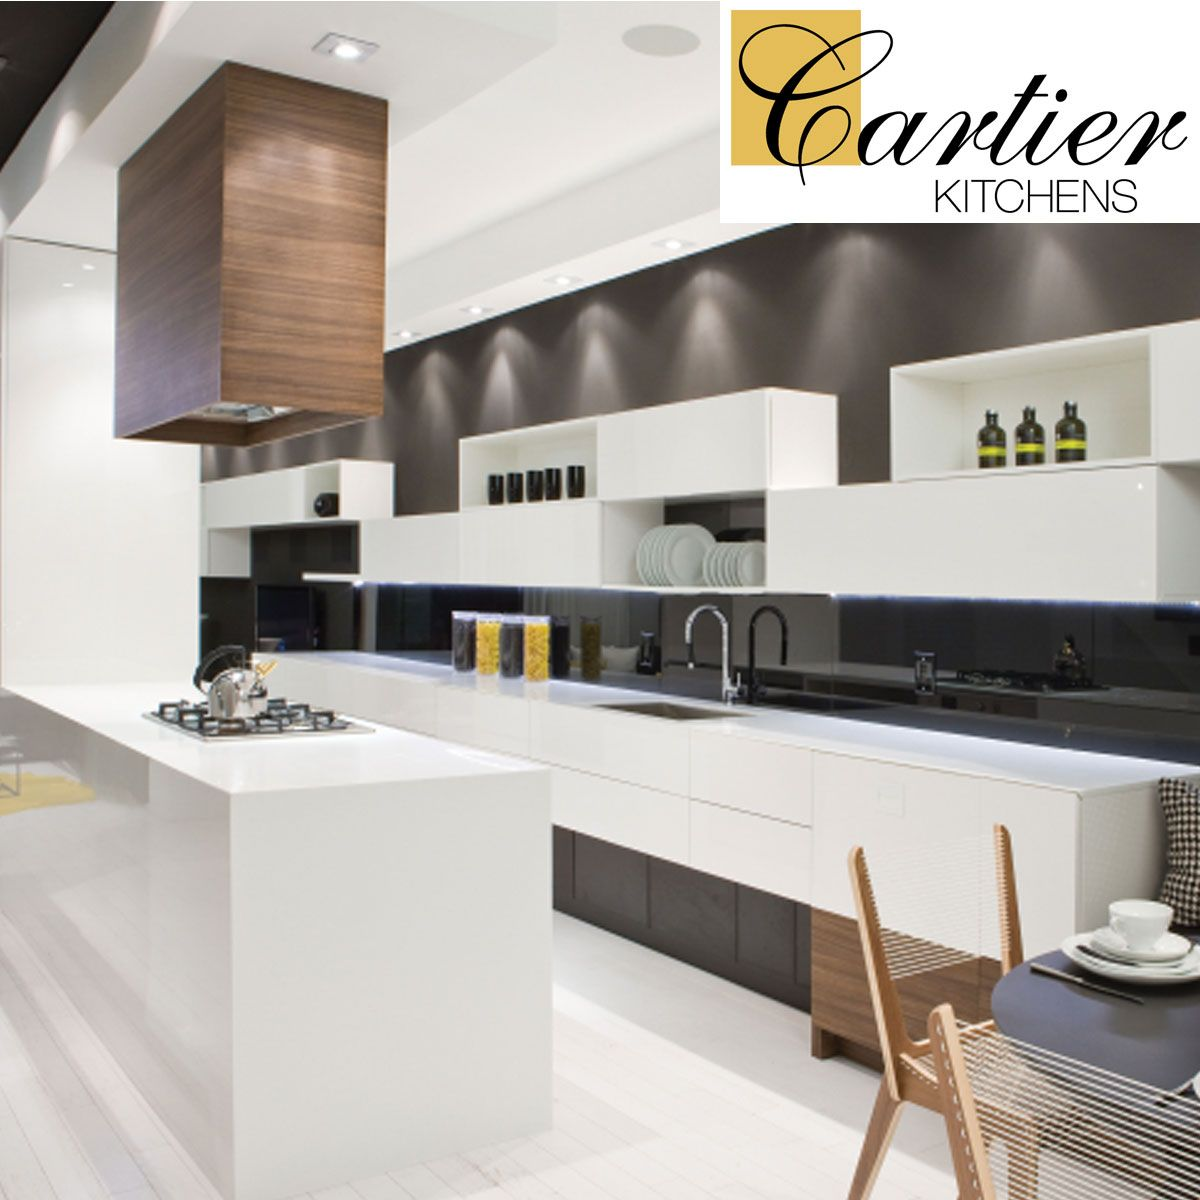 Cartier Kitchens first opened its doors in 1987 and began ...